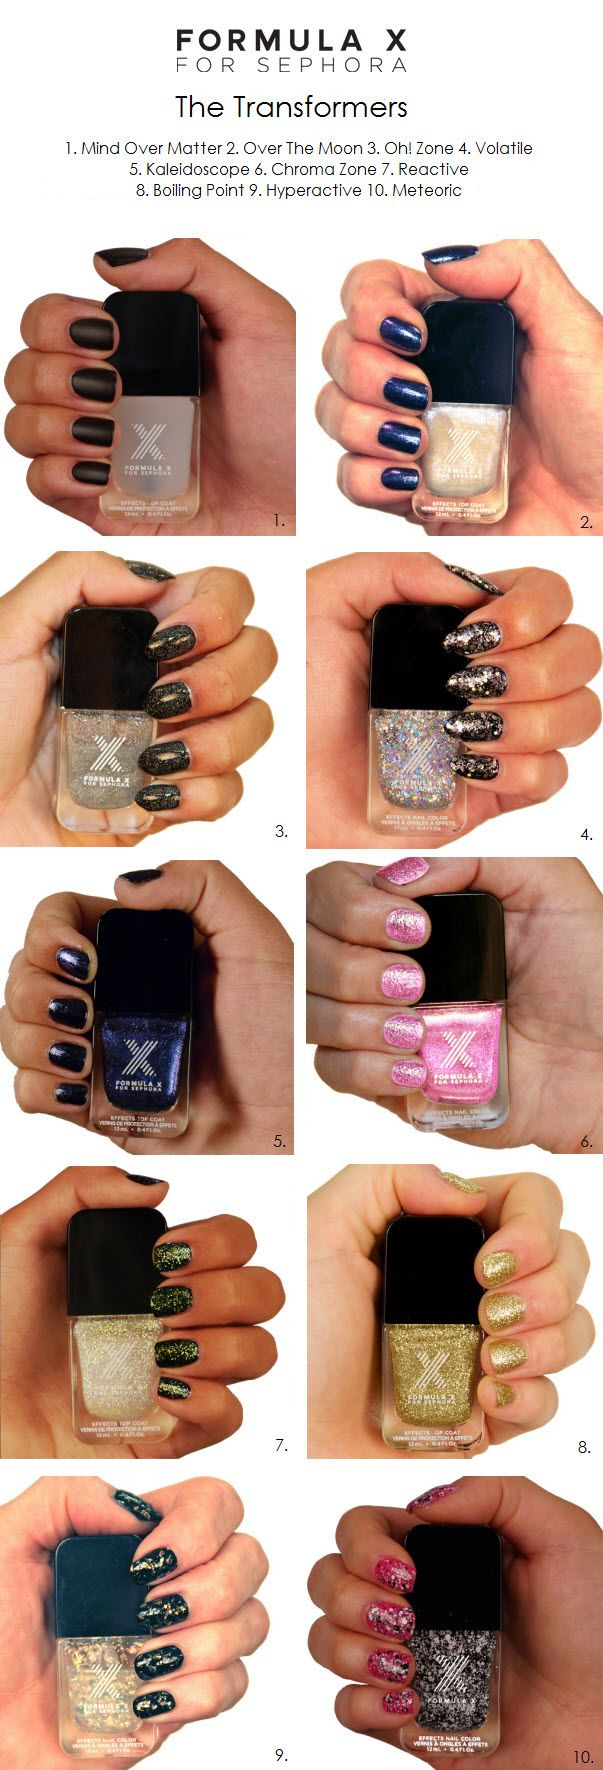 23 best Stash - Formula X for Sephora images on Pinterest | Nail ...